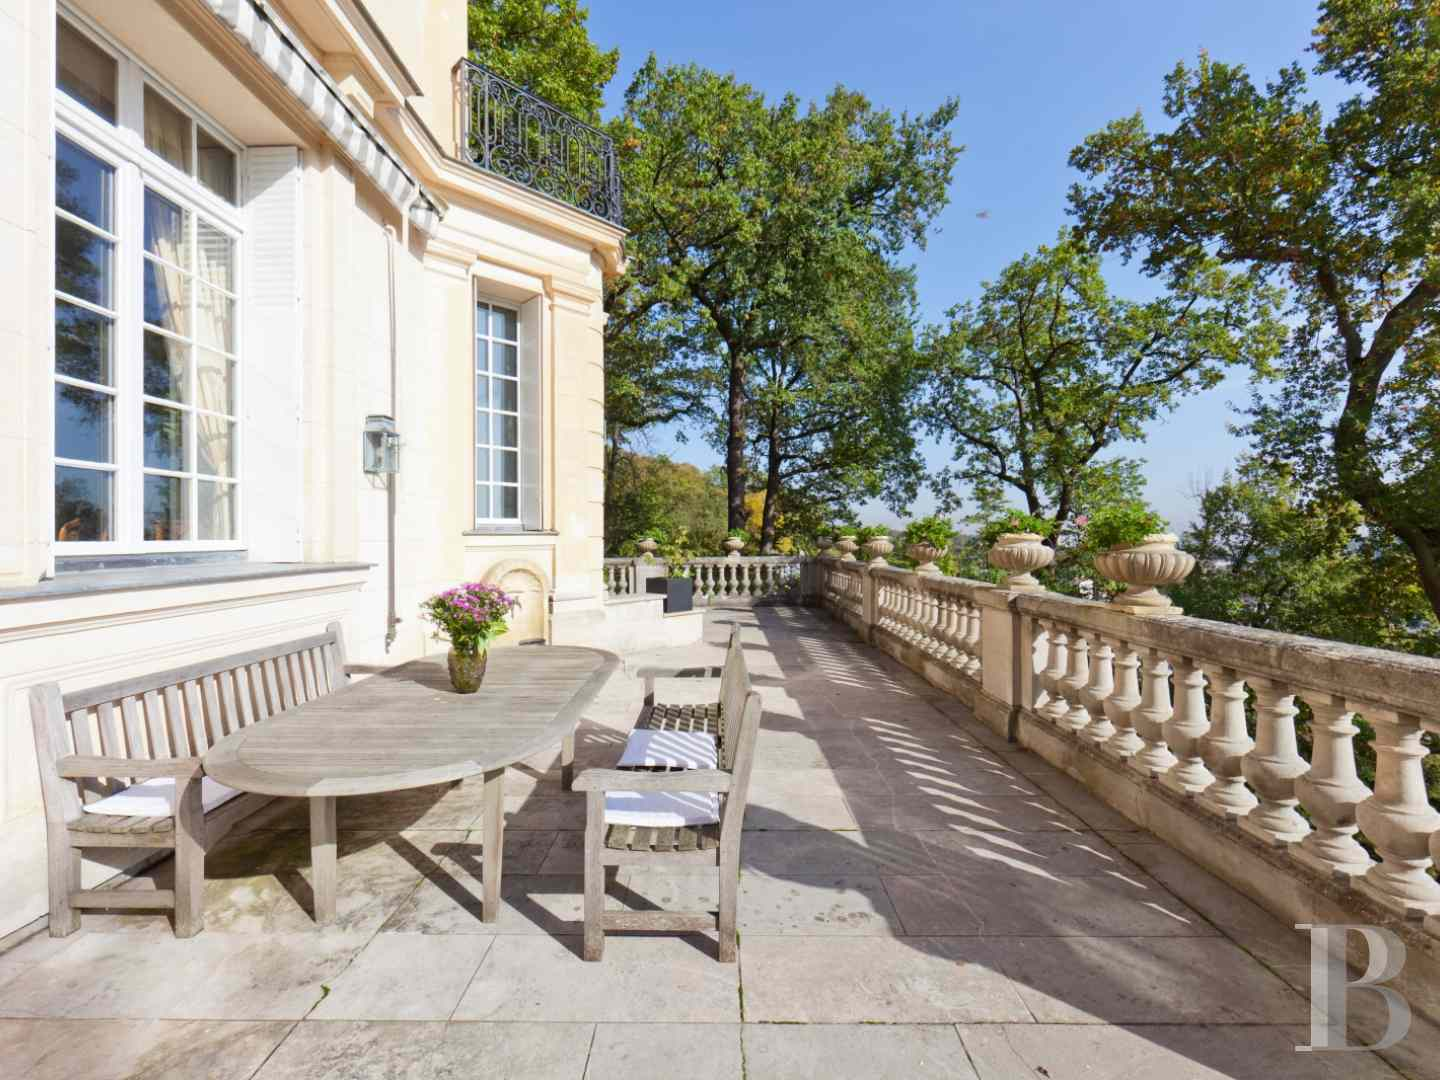 mansion houses for sale paris mansion houses - 17 zoom